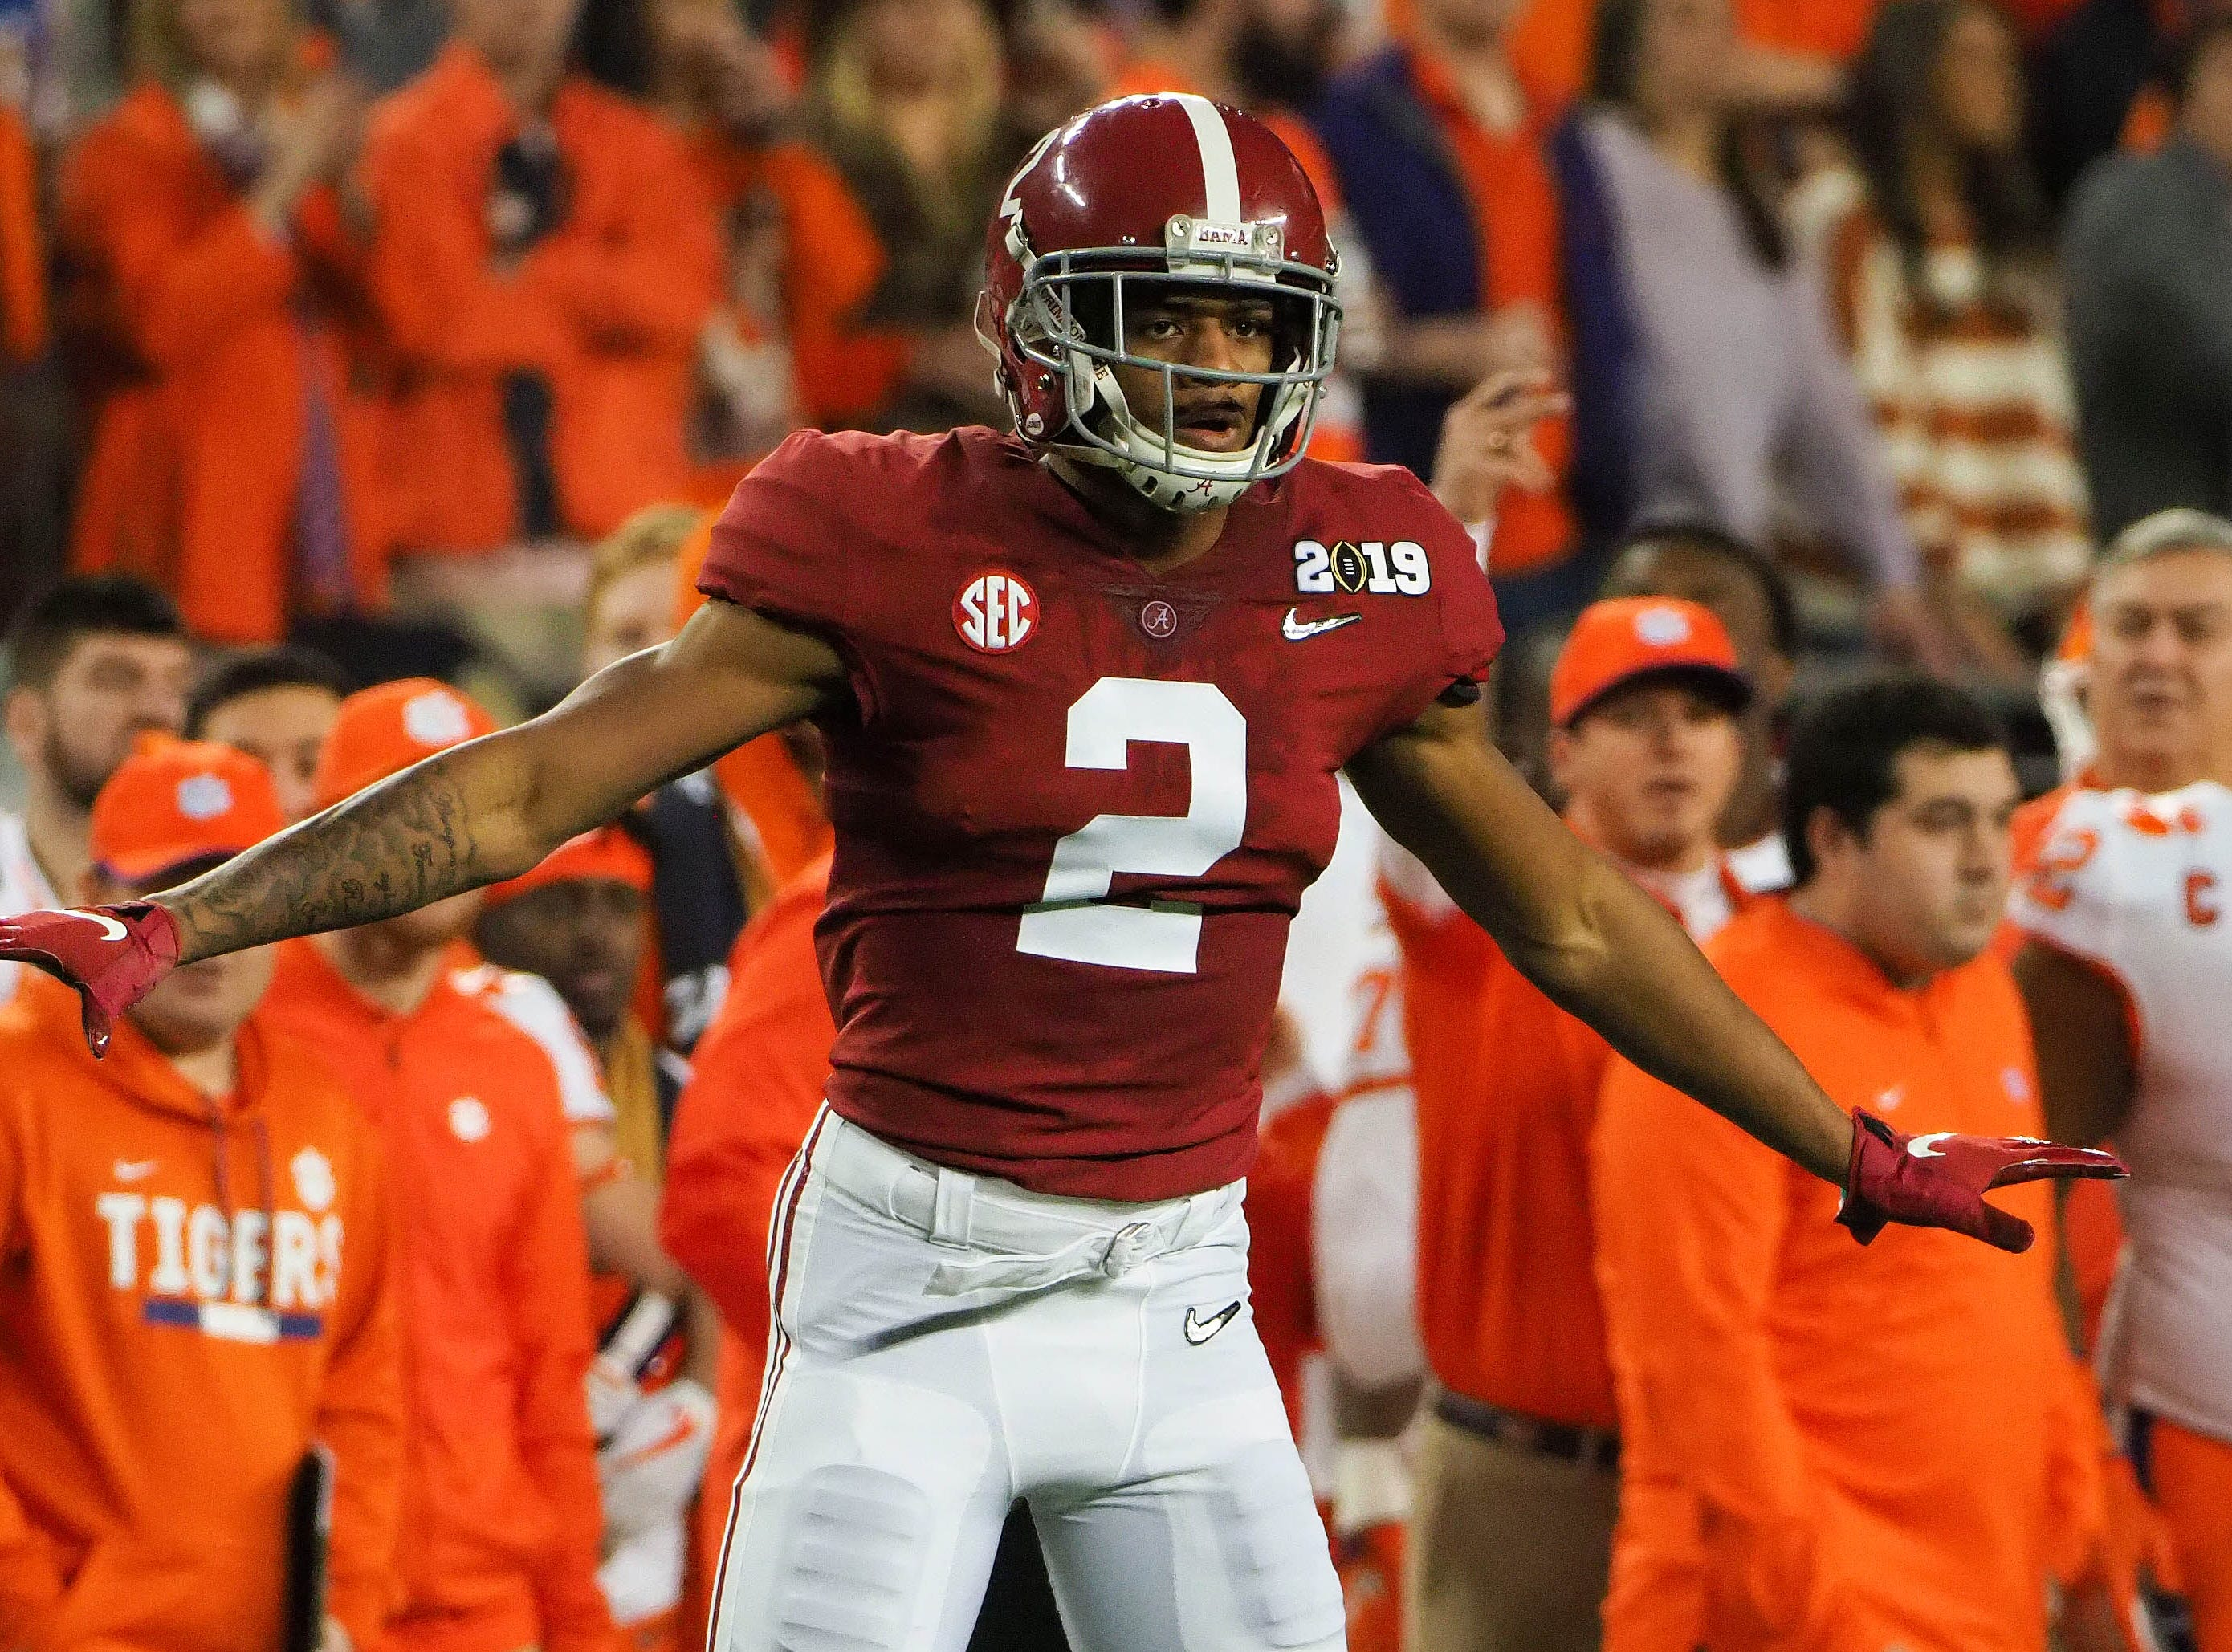 Alabama defensive back Patrick Surtain II reacts during the first quarter.